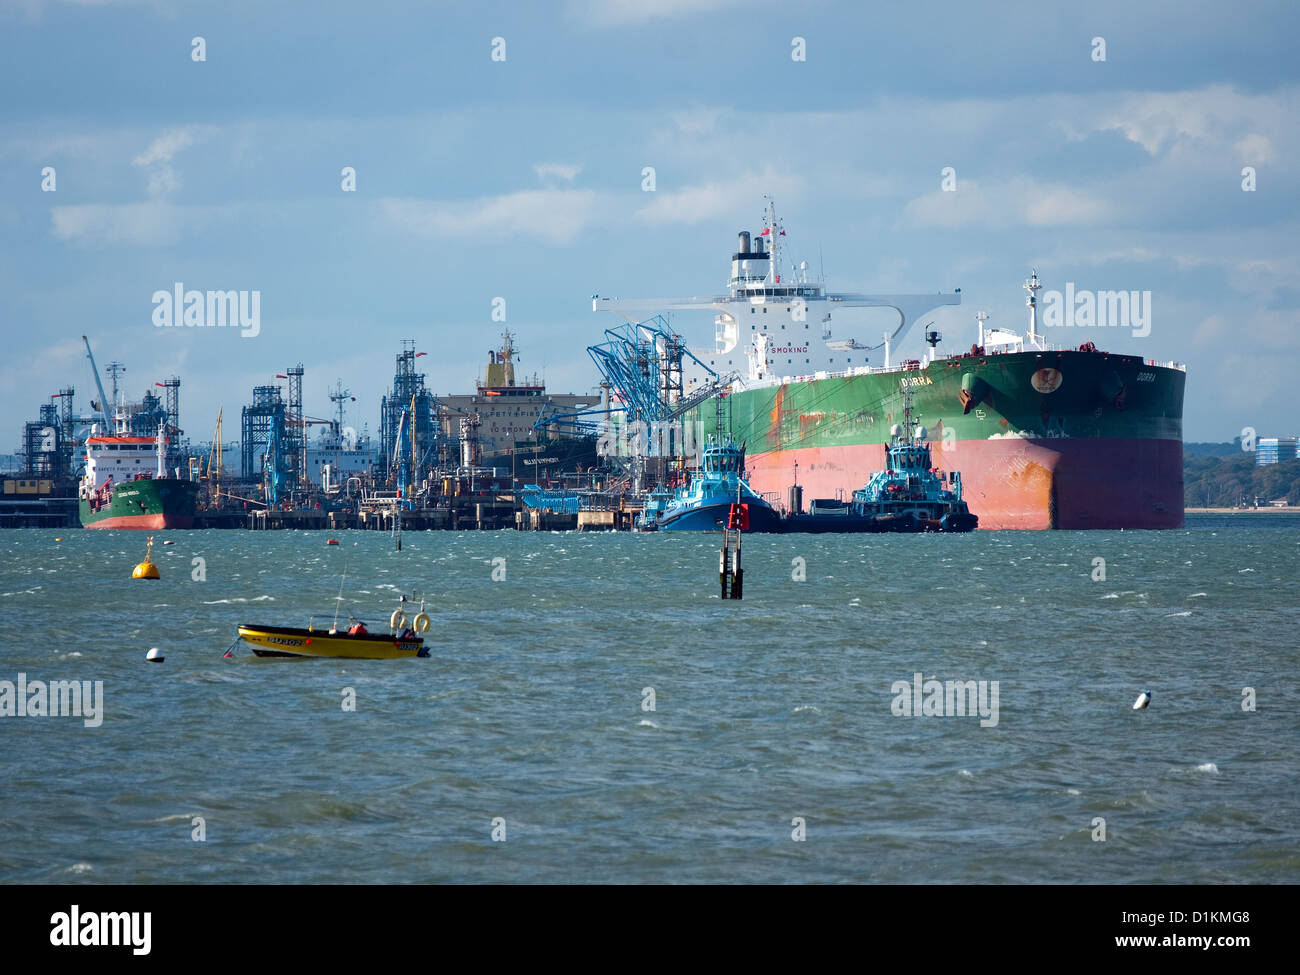 Oil tanker at Fawley Oil Refinary in Southampton Hampshire - Stock Image